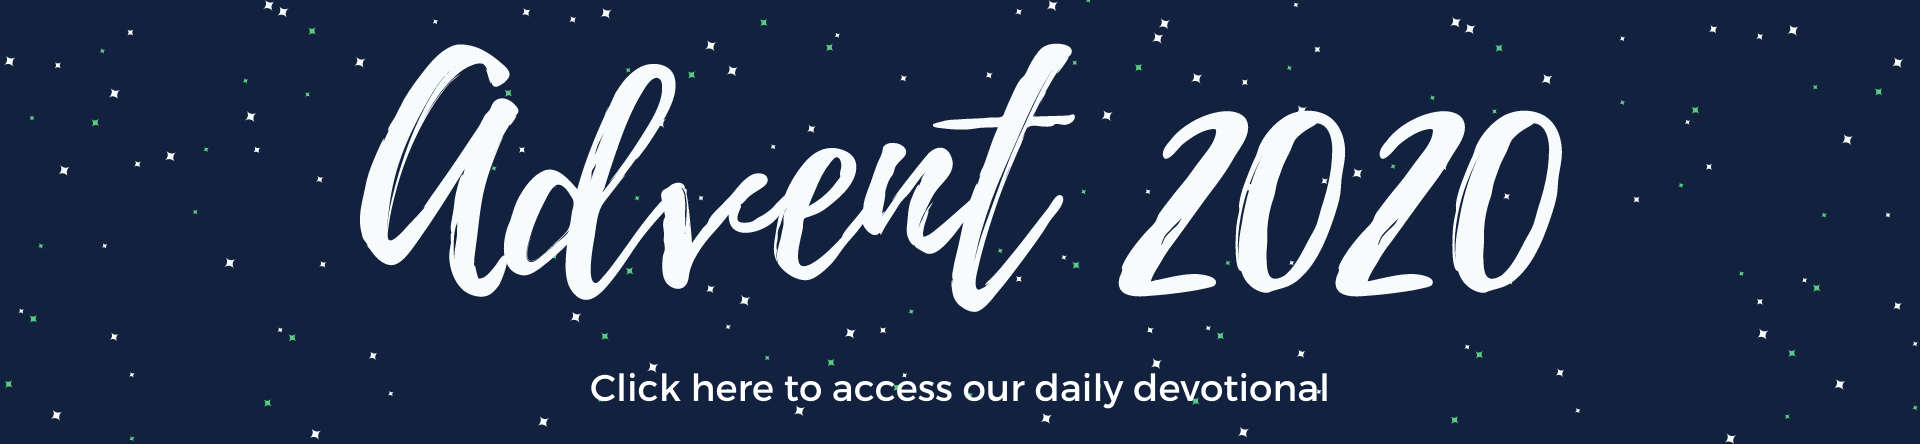 Advent 2020 graphic - click to view devotional